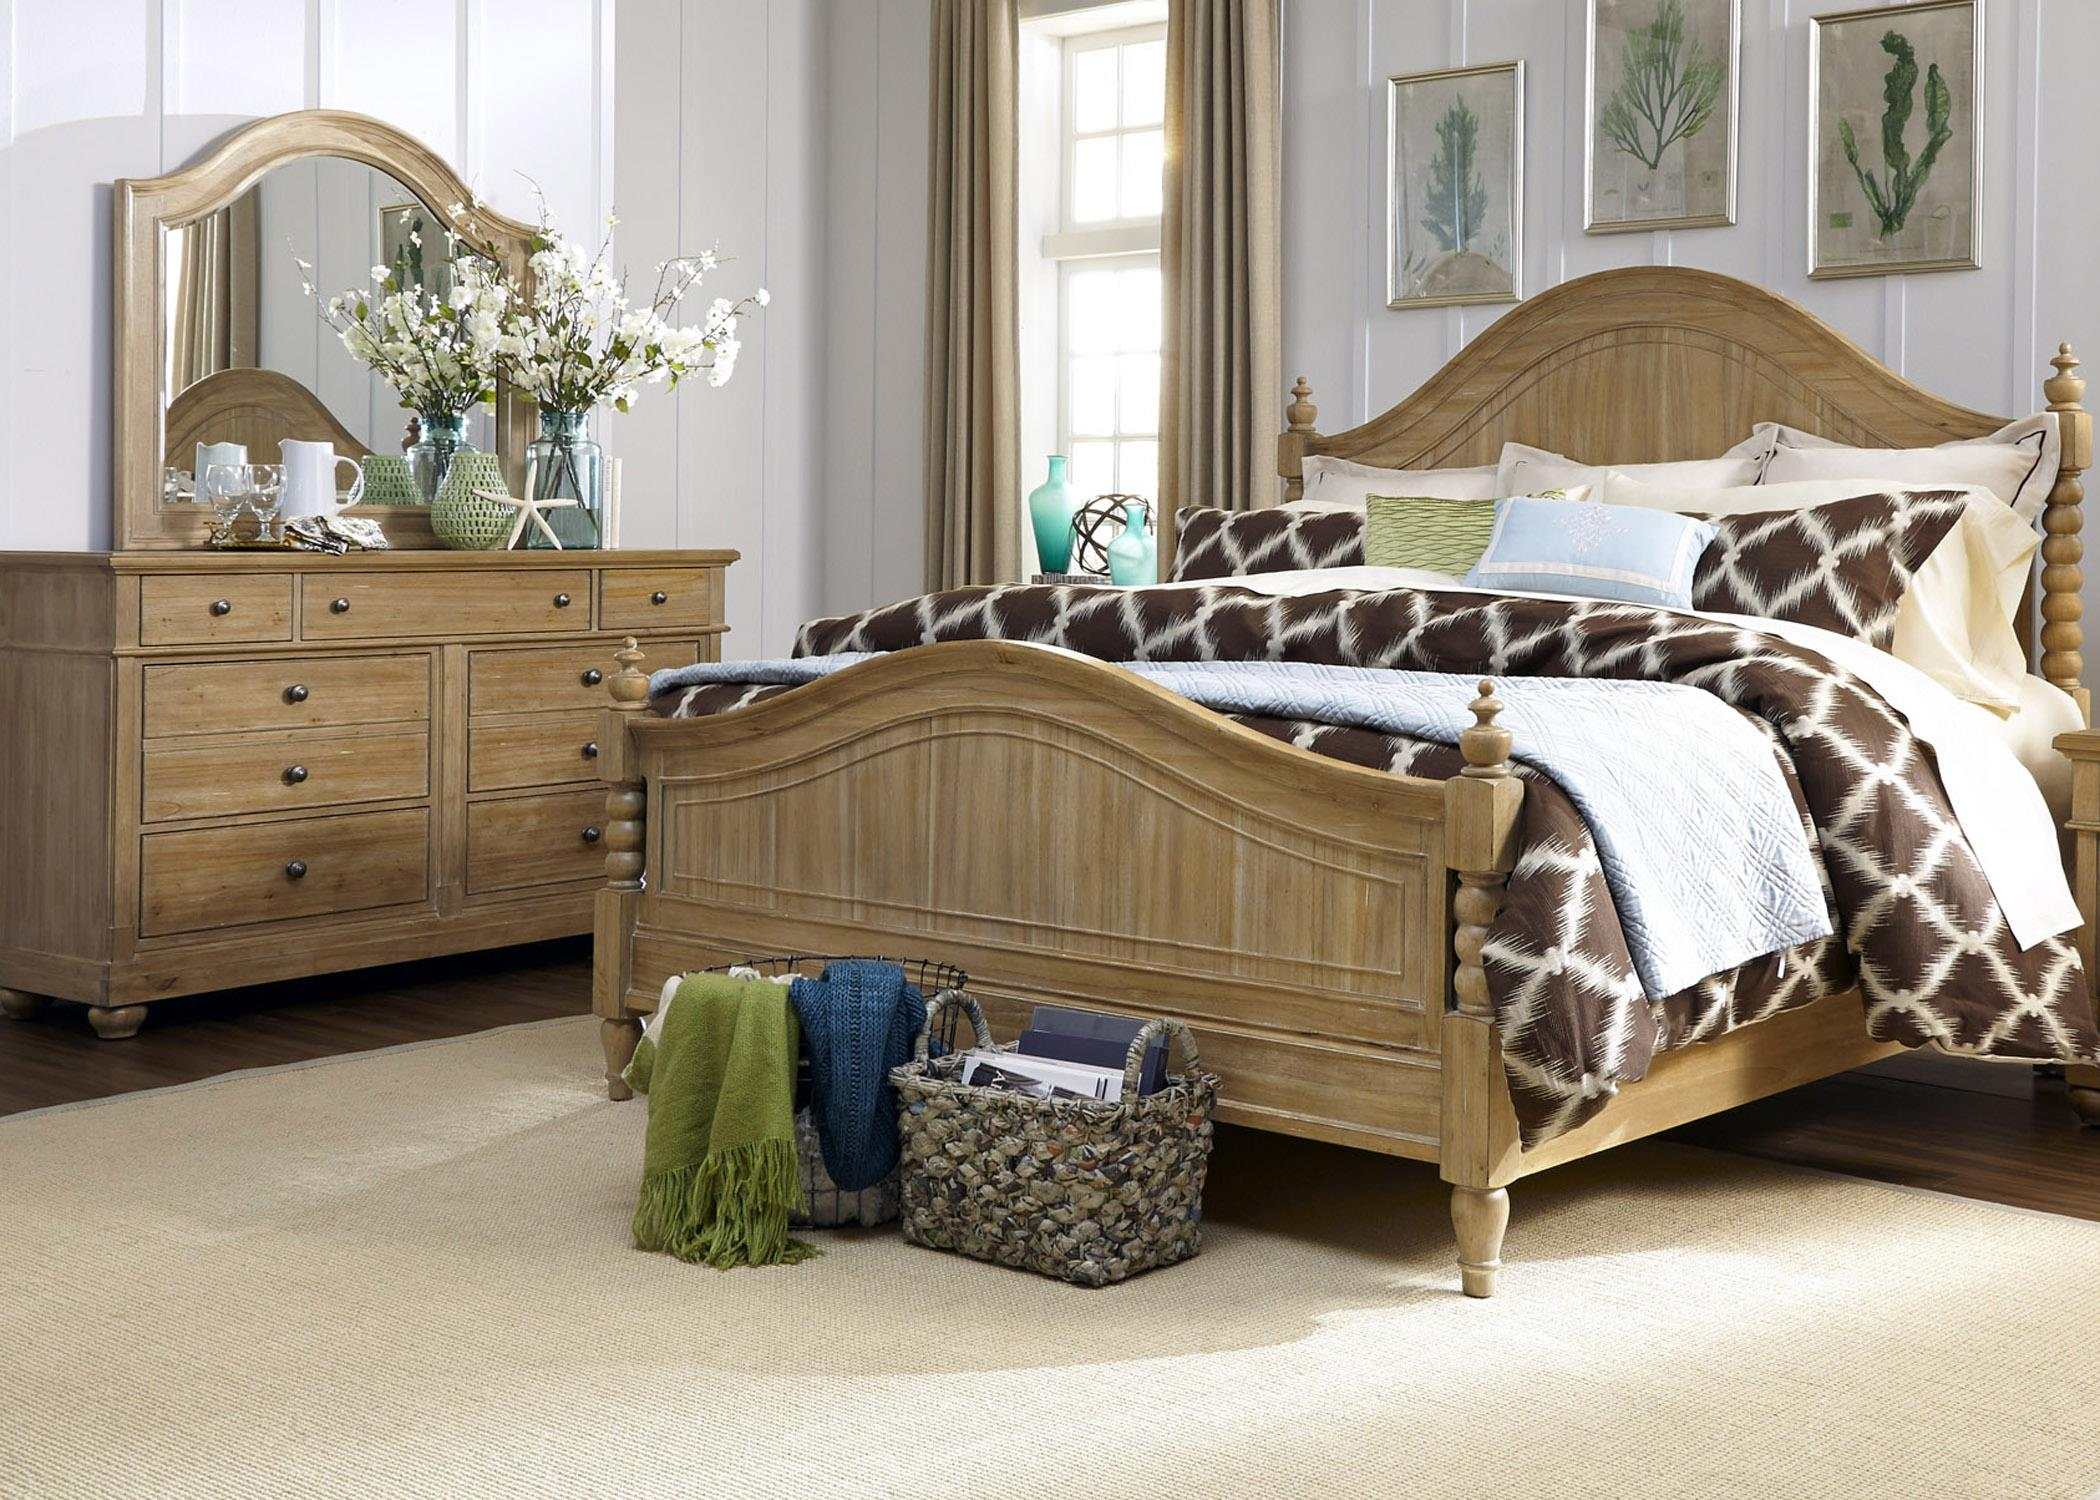 Liberty Furniture Harbor View Queen Bedroom Group - Item Number: 531-BR-QPSDM